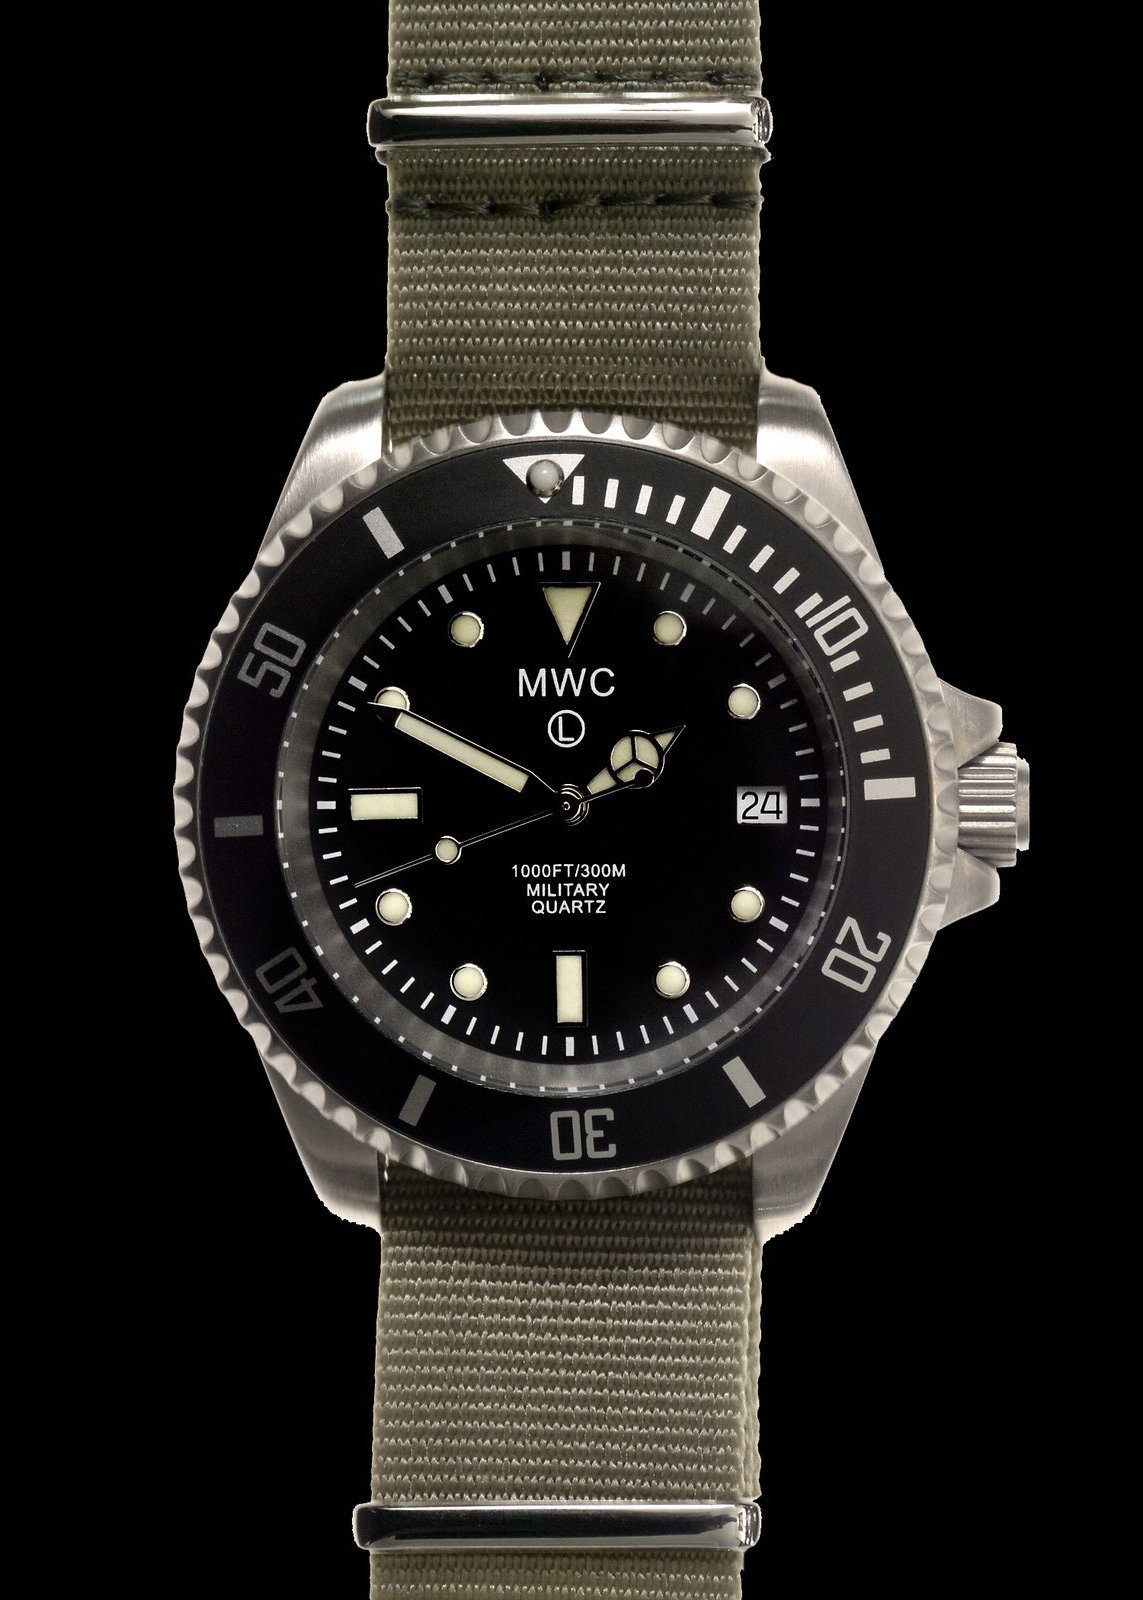 Водолазен часовник MWC 300m / 1000ft Stainless Steel Quartz Military Divers - MWC